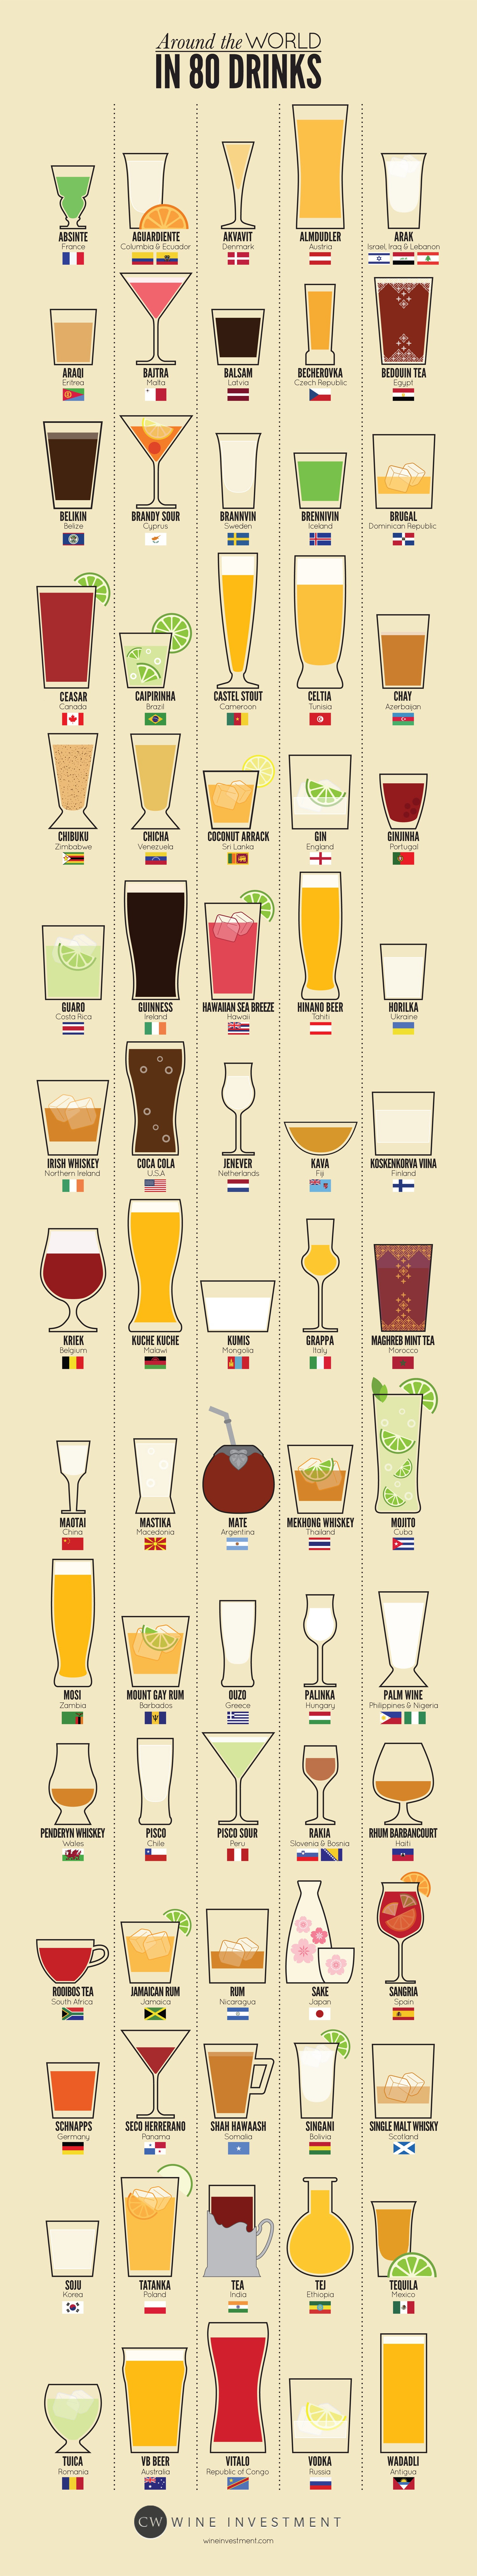 Infographic: Around The World In 80 Drinks